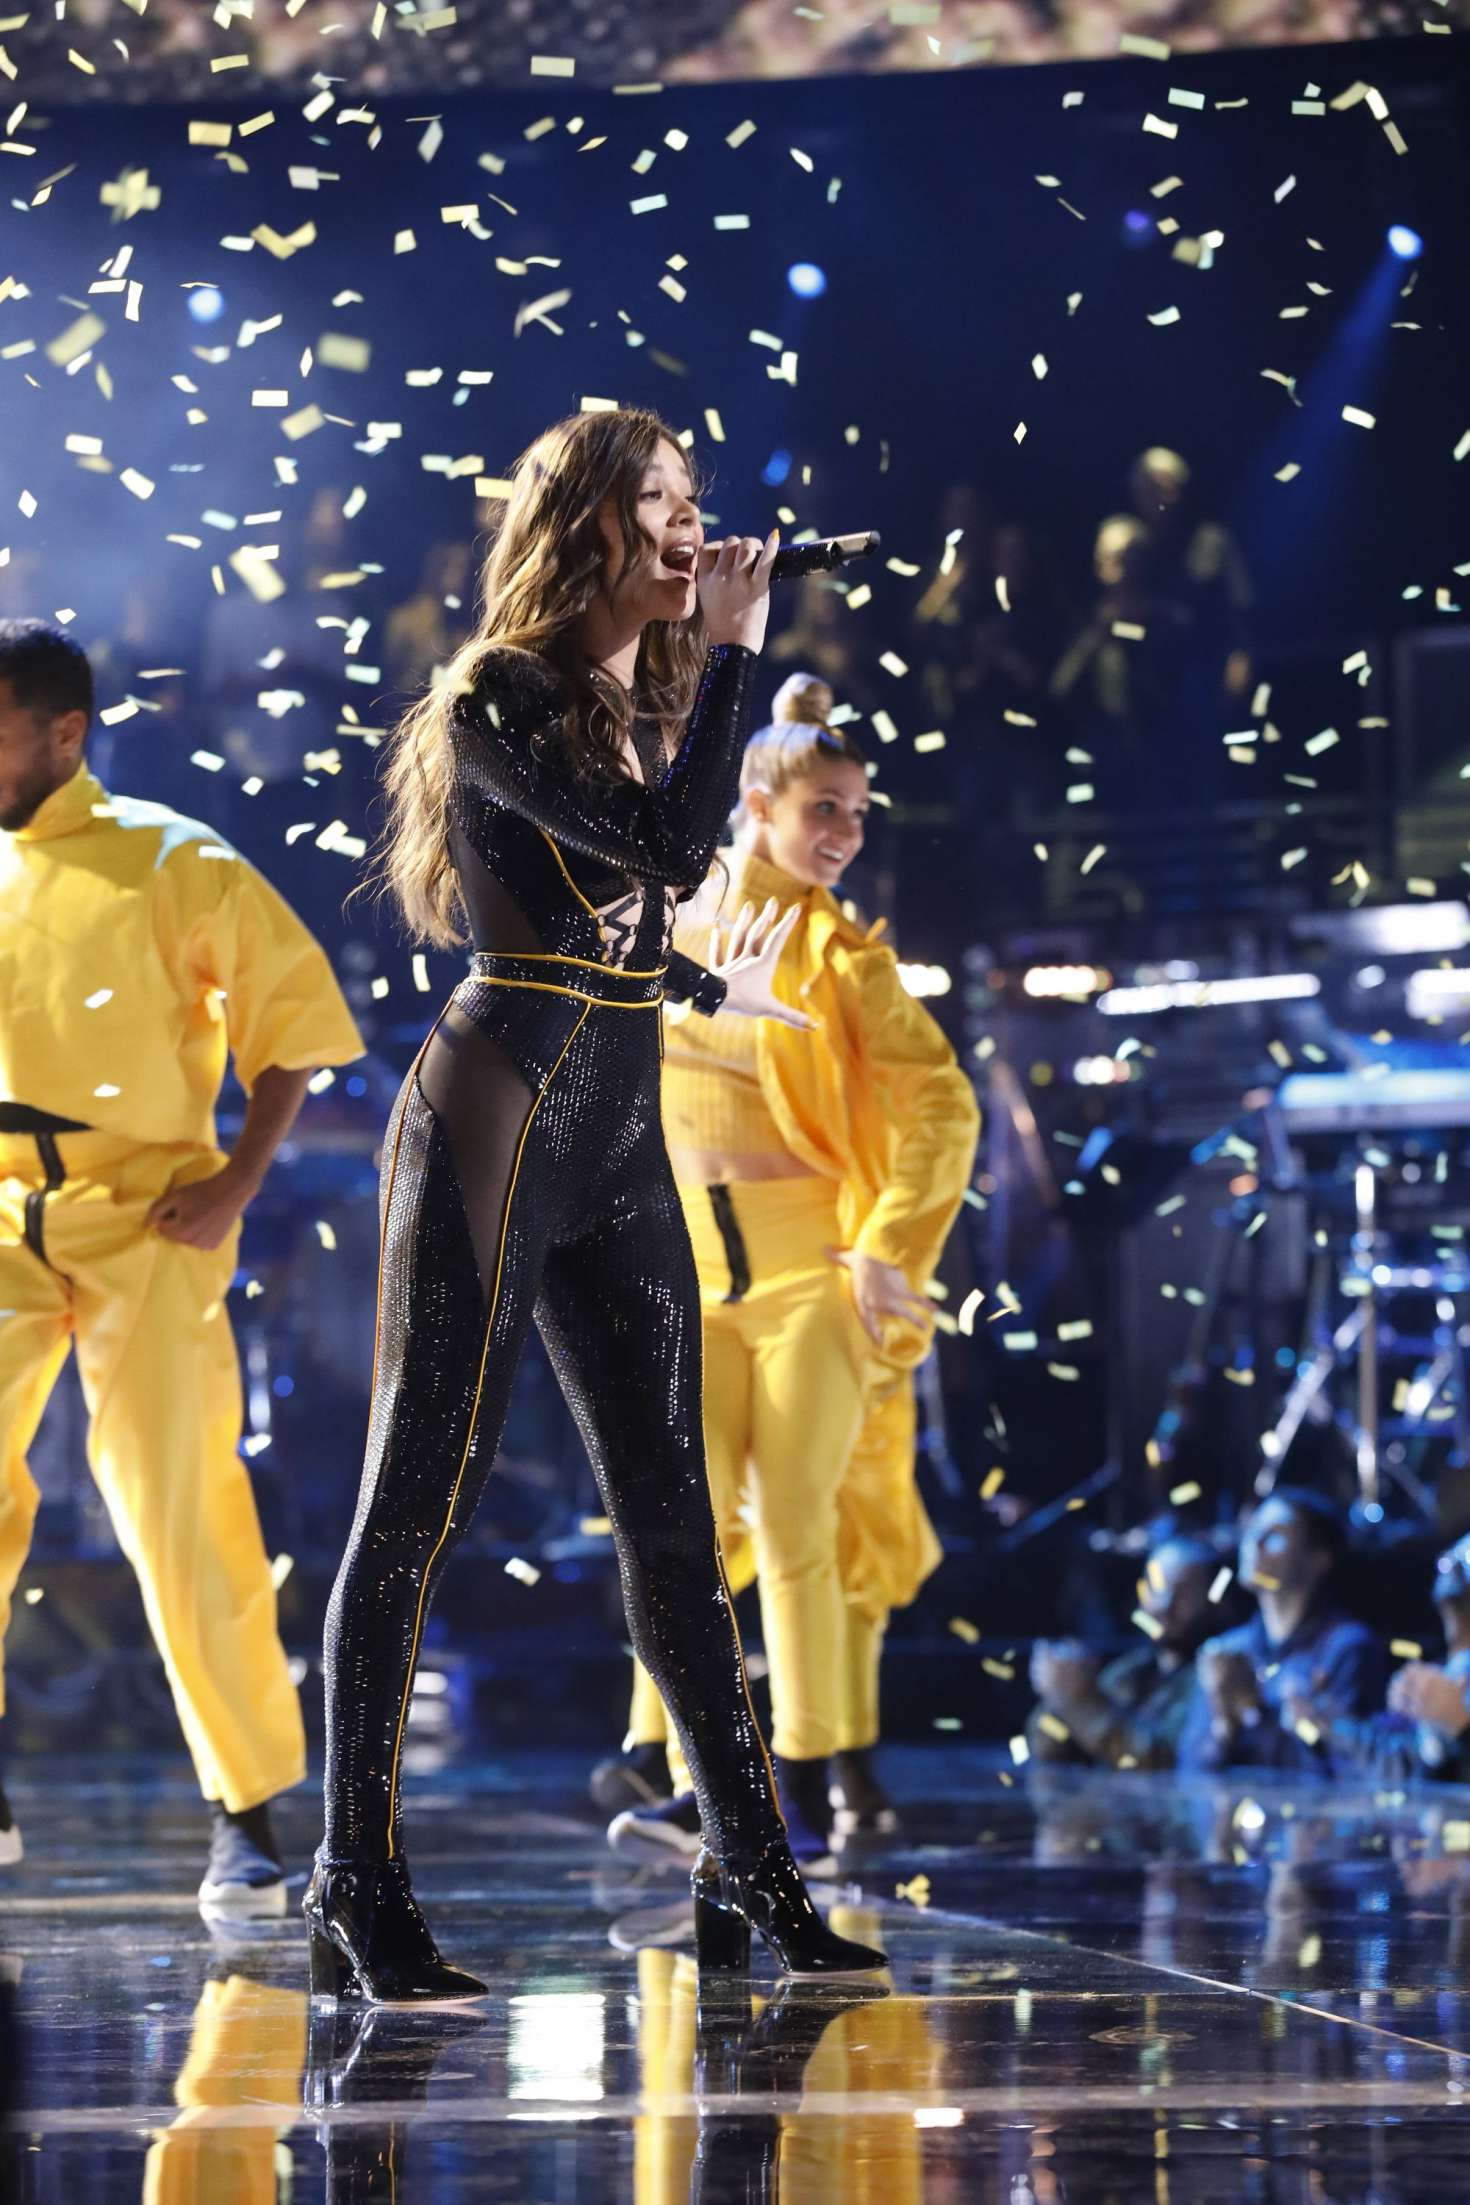 Hailee Steinfeld – The Voice – Season 15 'Live Semi Final Results'